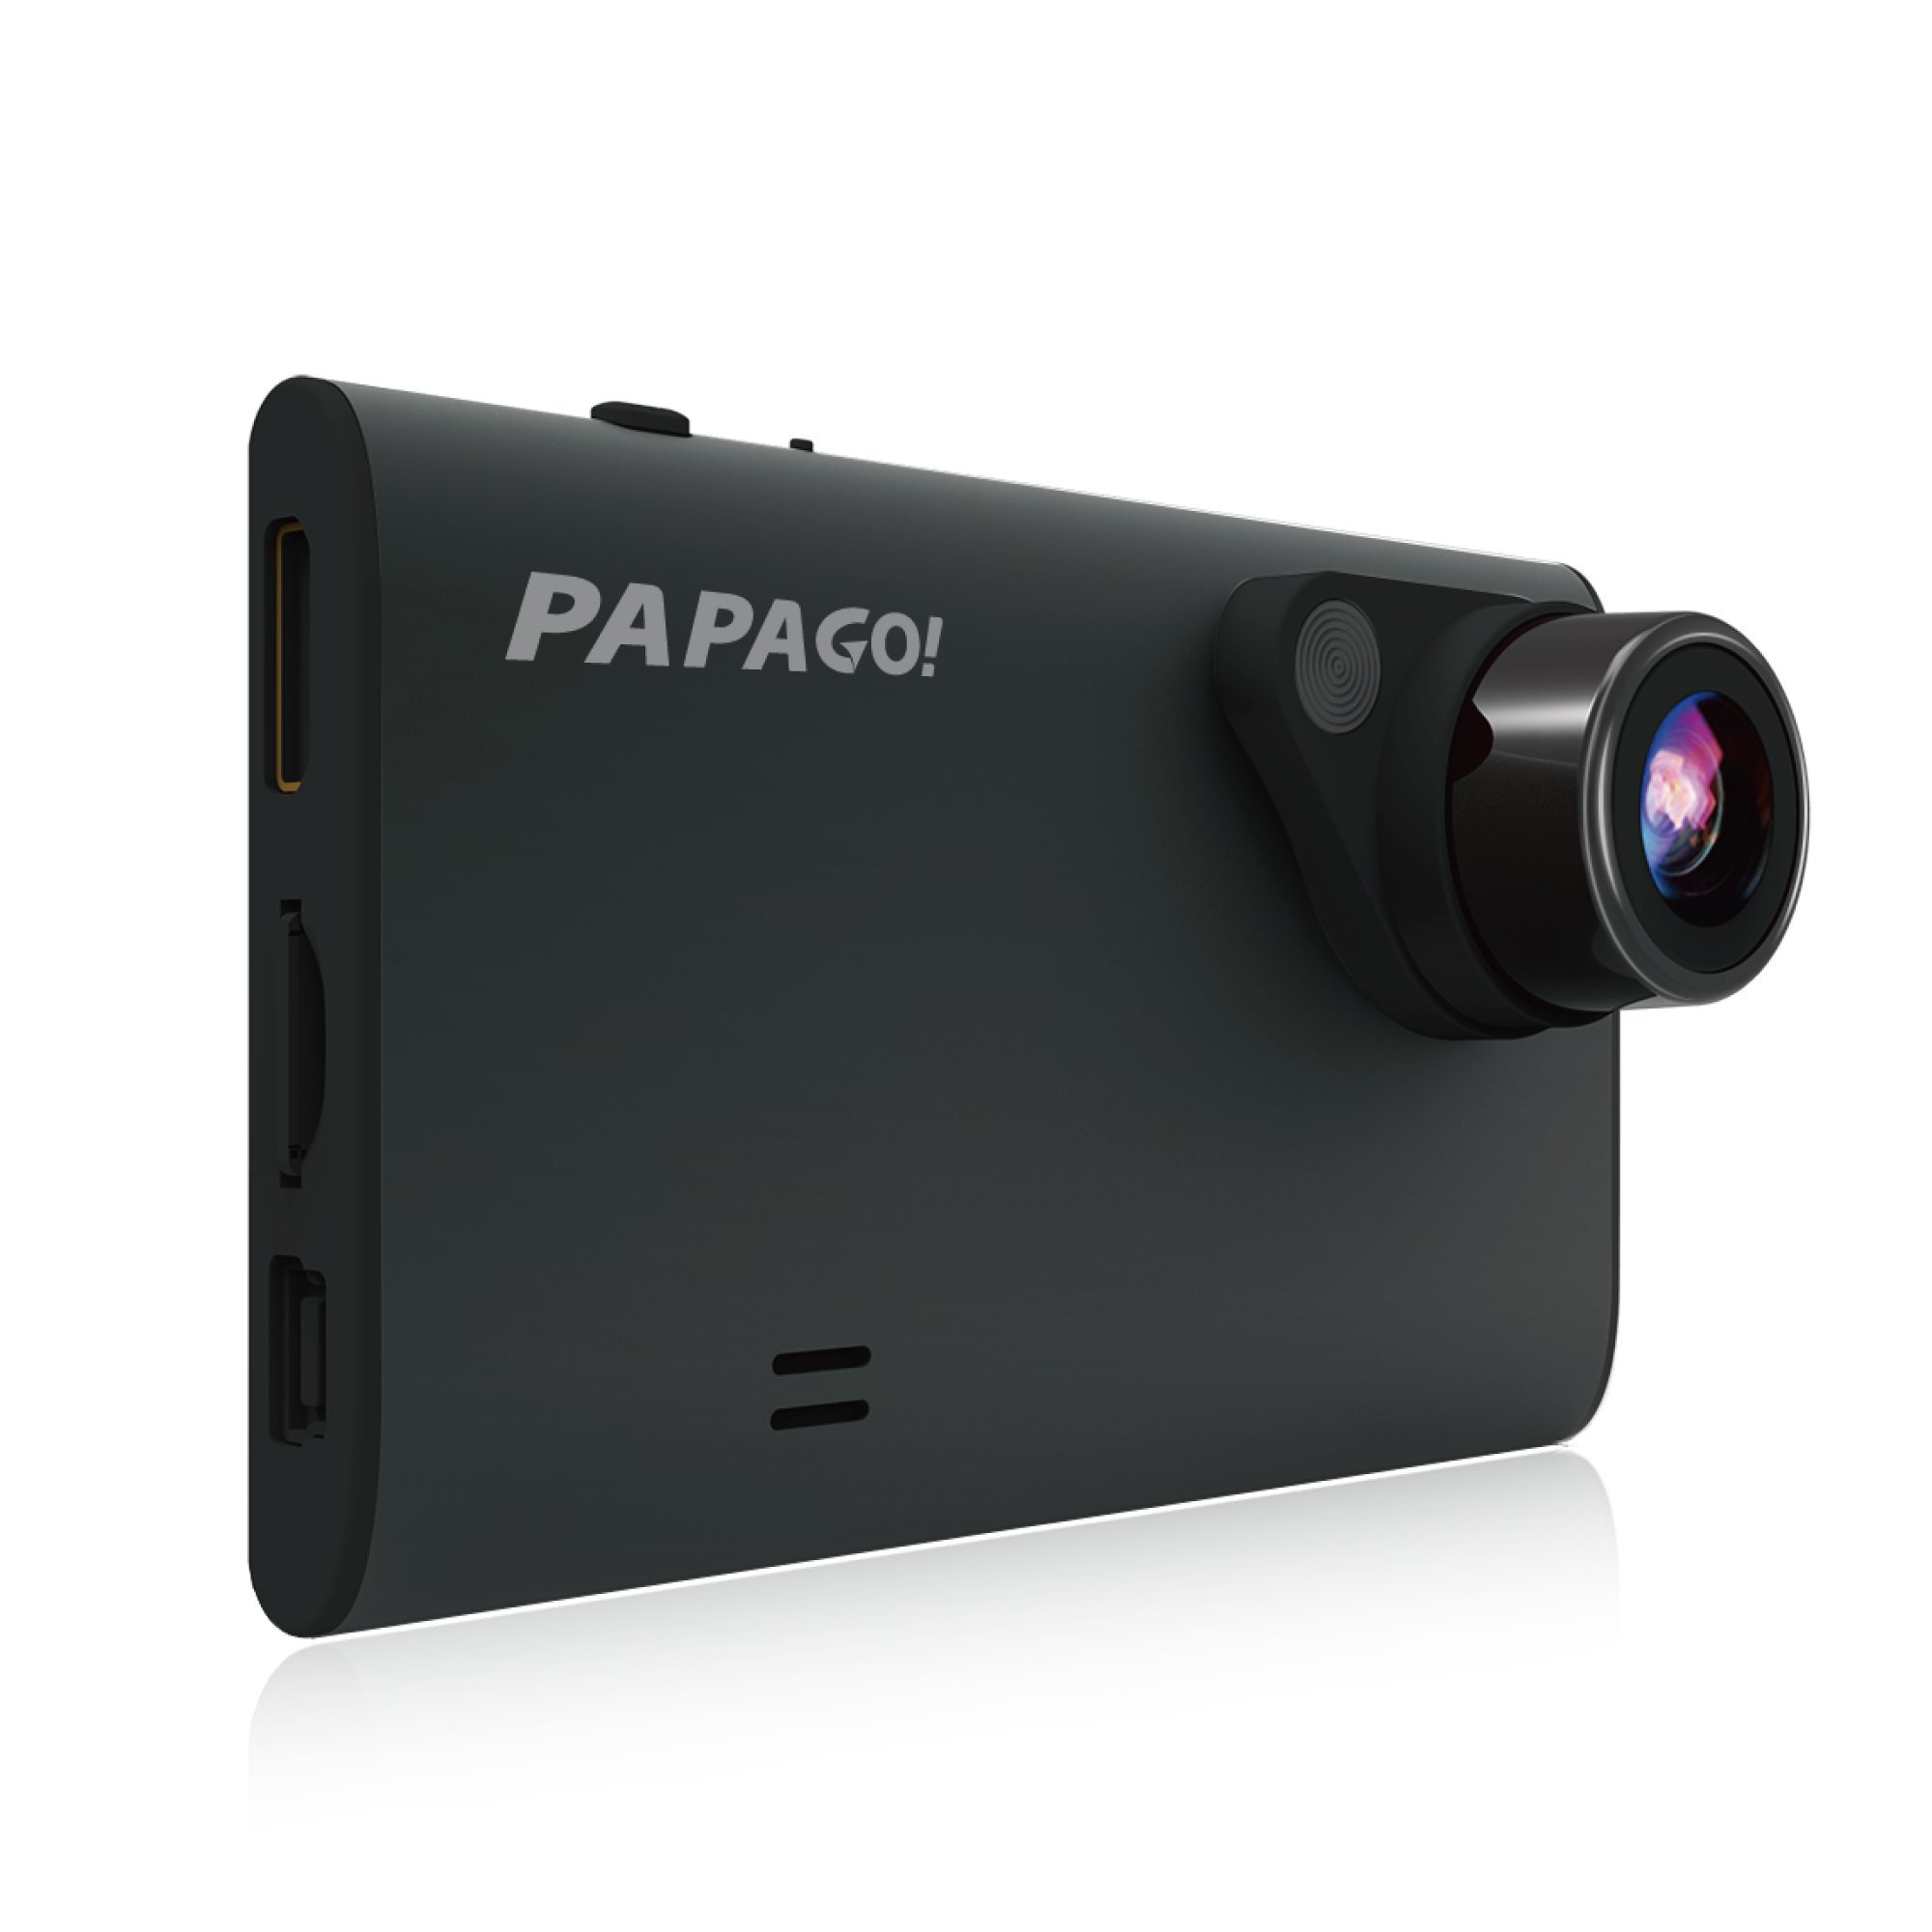 Papago GoSafe 550 Super HD 1296p 160 Degree Ultra Wide Angle Dash Cam with 8GB Micro SD Card